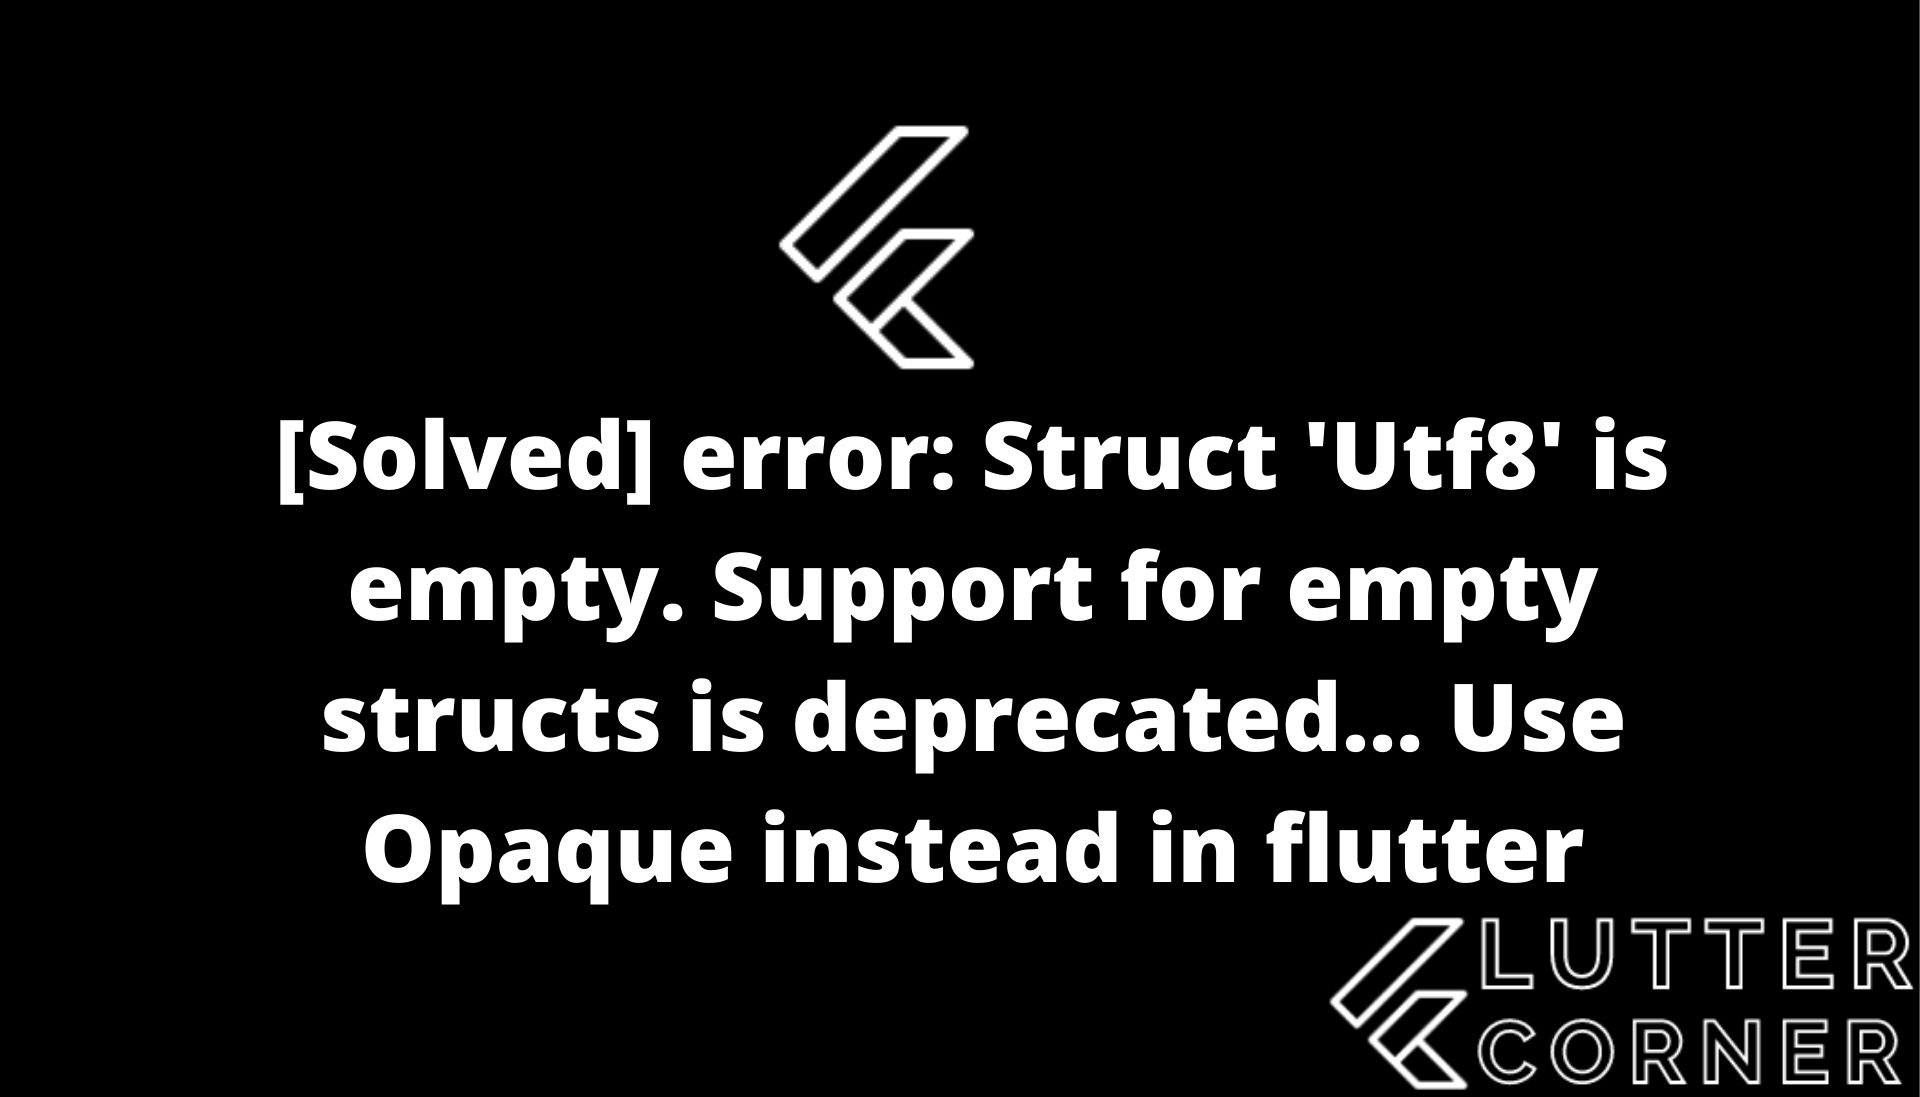 error: Struct 'Utf8' is empty. Support for empty structs is deprecated… Use Opaque instead in flutter, flutter error: Struct 'Utf8' is empty. Support for empty structs is deprecated… Use Opaque instead, error: Struct 'Utf8' is empty. Support for empty structs is deprecated… Use Opaque instead